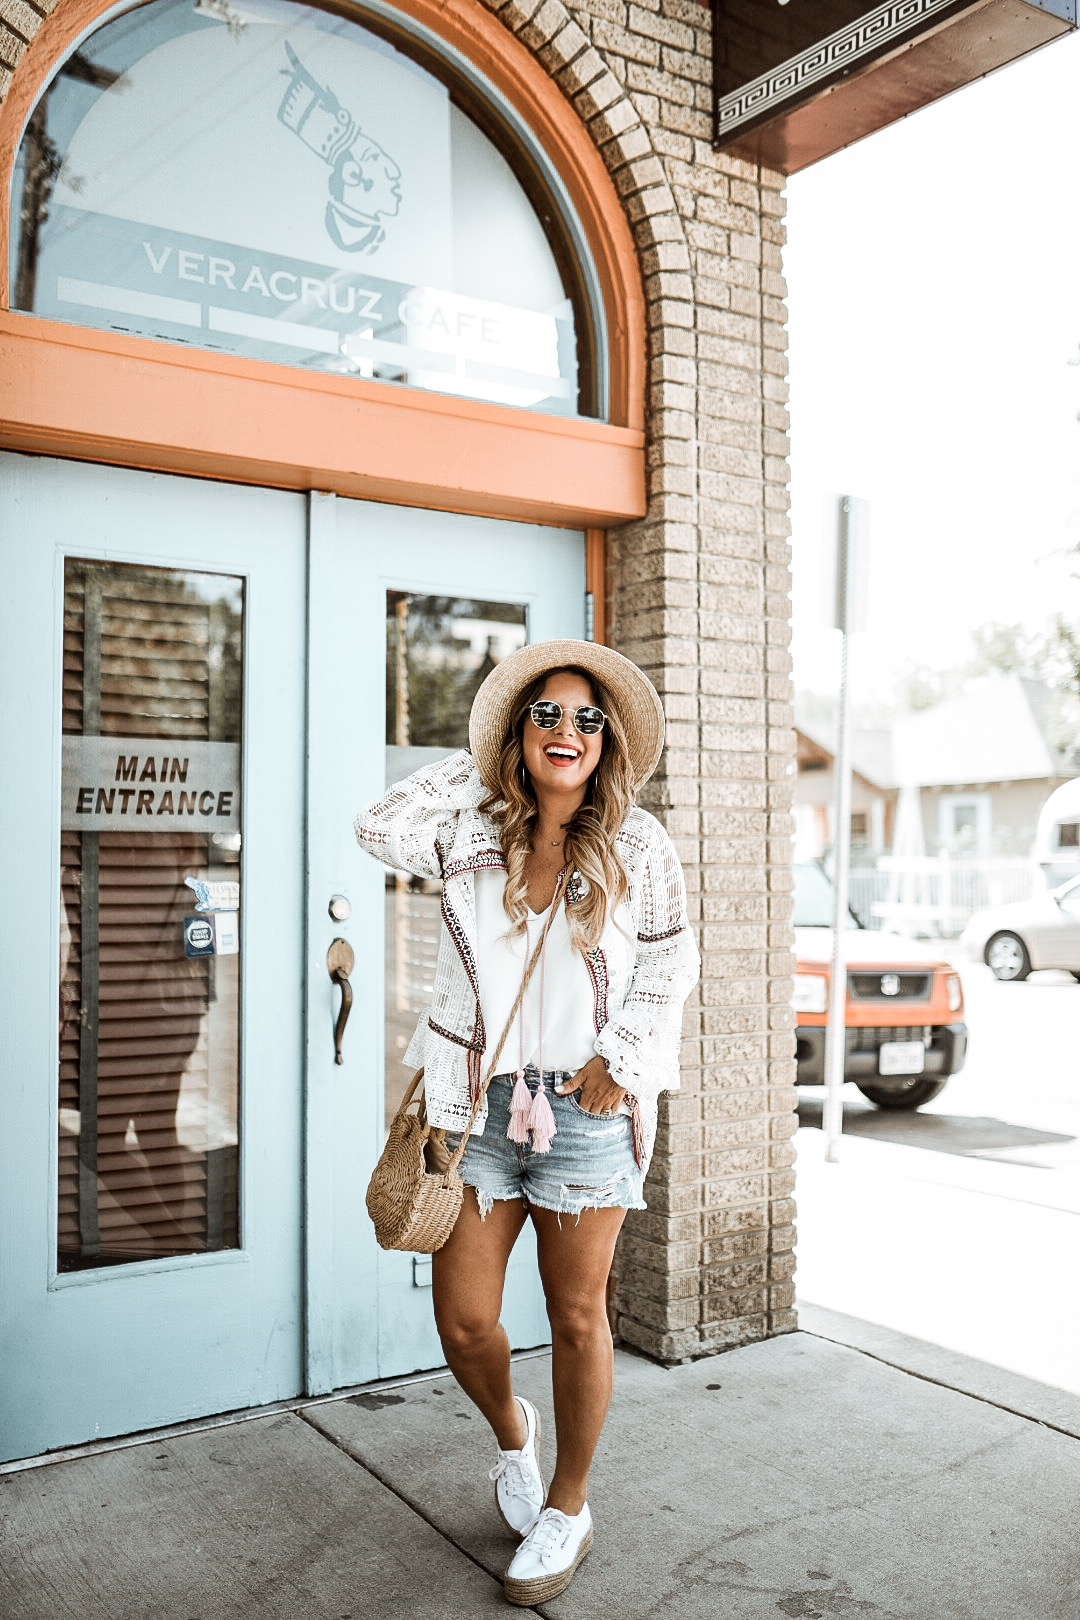 CASUAL OUTFIT FOR A DAY OF EXPLORING DALLAS. OPEN FRONT TOP WITH CROCHET AND TASSEL DETAILS. READ MORE ABOUT MY RIVER ISLAND SUMMER STYLE ON THE BLOG.